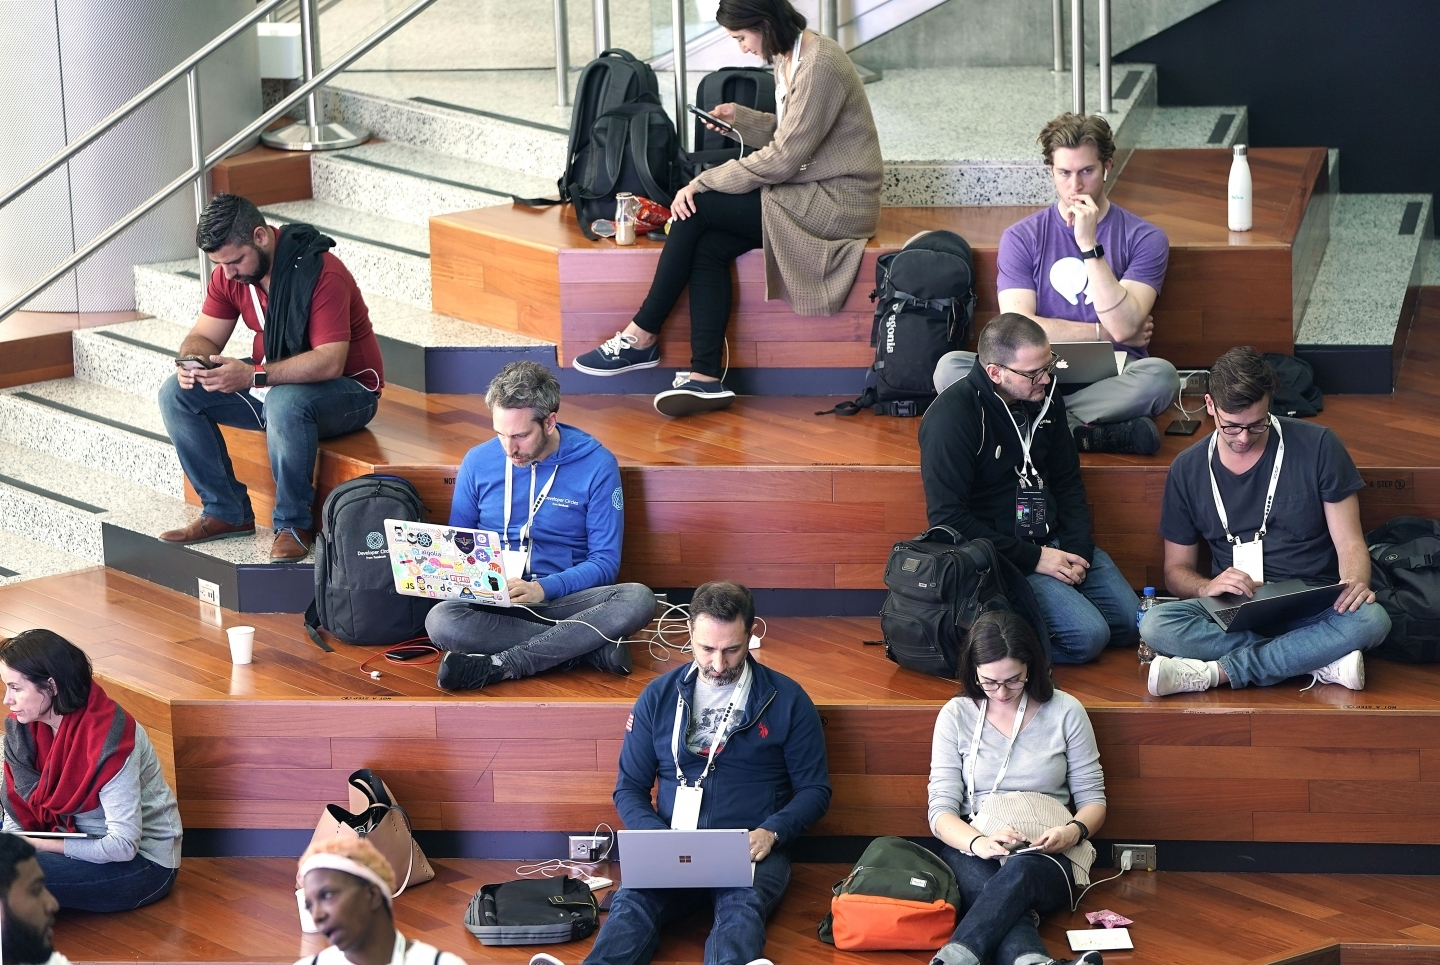 Attendees work on their computers at Facebook's developer conference on April 30, 2019, in San Jose. (AP Photo/Tony Avelar )